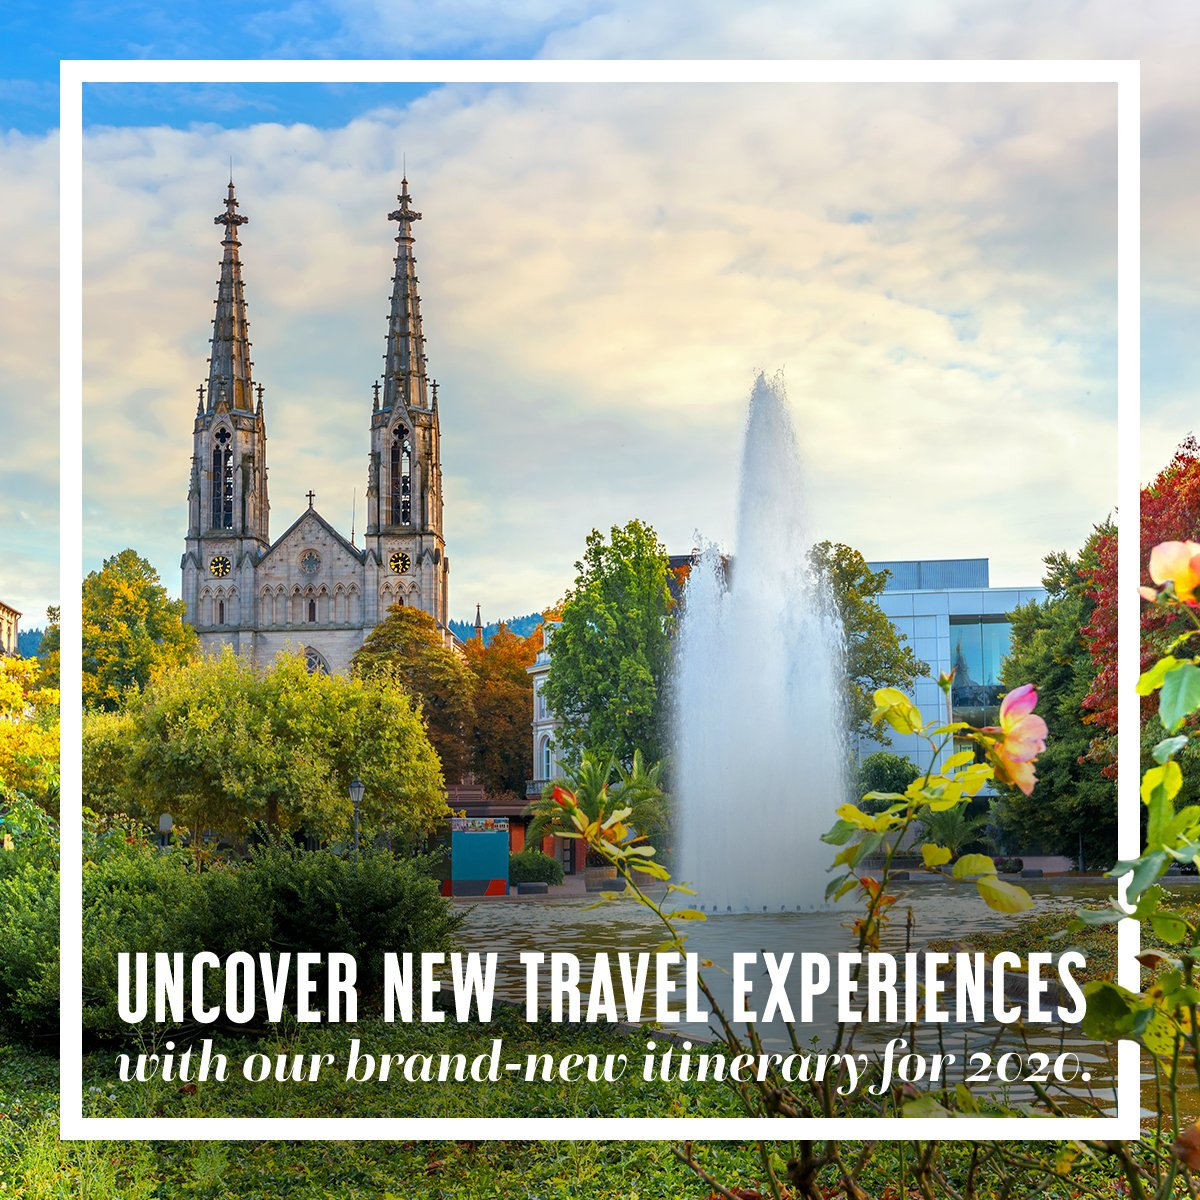 Uncover new travel experiences with our brand-new itinerary for 2020